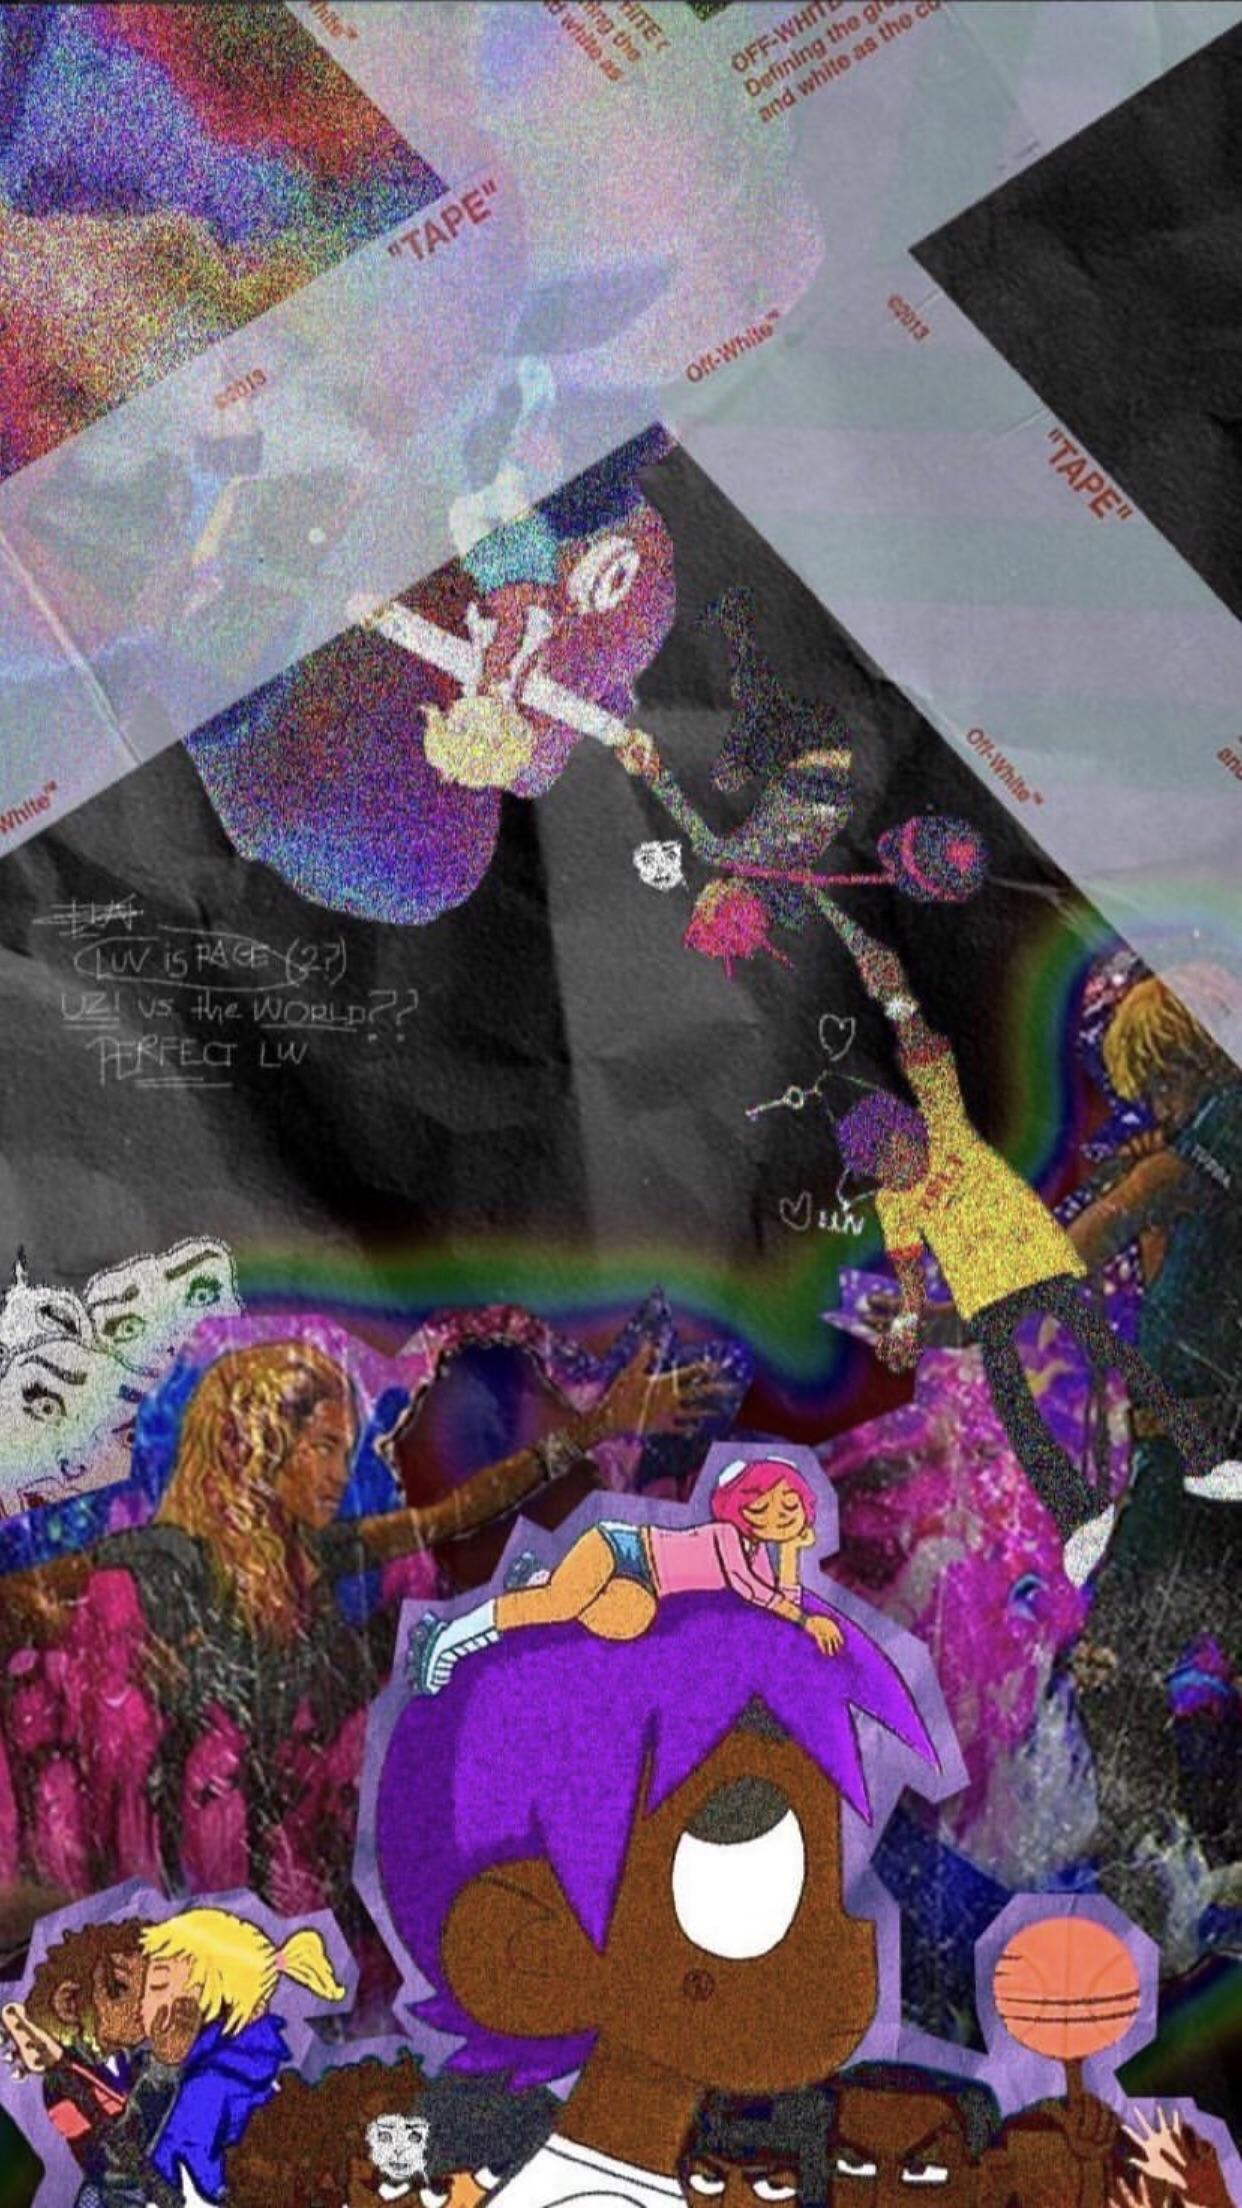 Lil Uzi Vert Desktop Background Posted By Samantha Sellers The best gifs are on giphy. lil uzi vert desktop background posted